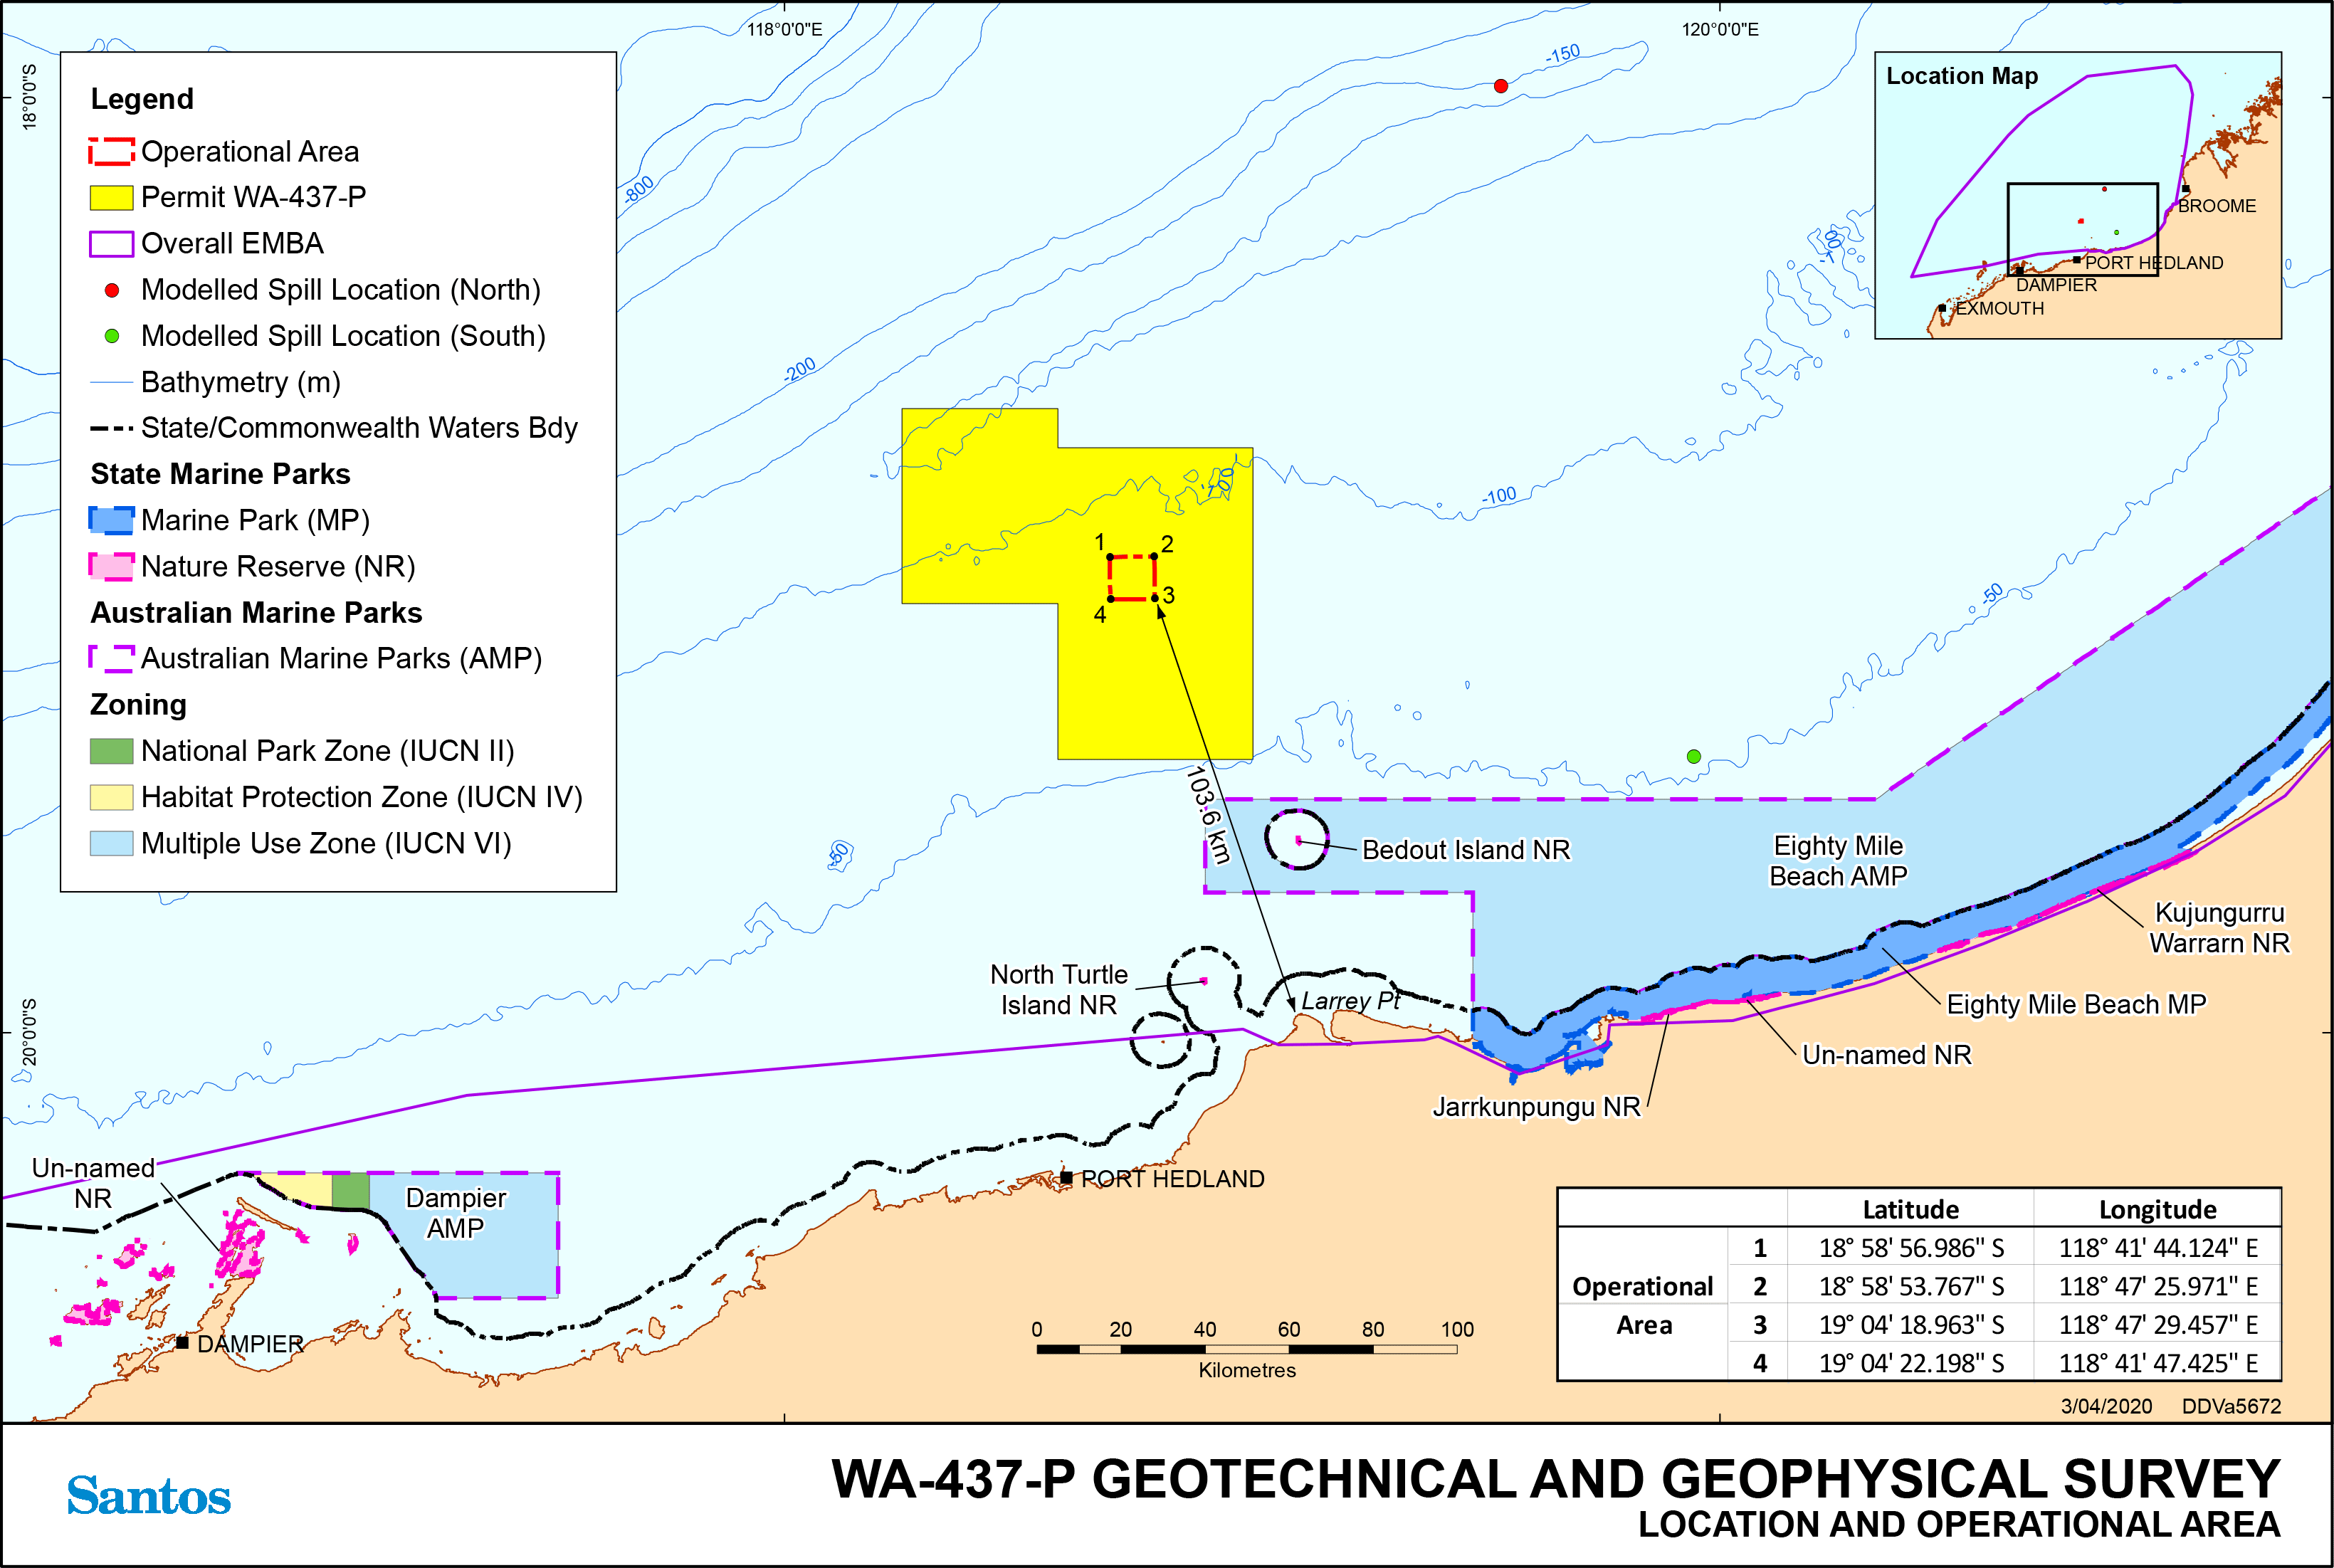 Location map - Activity: WA-437-P Geotechnical and Geophysical Survey Environment Plan (refer to description)